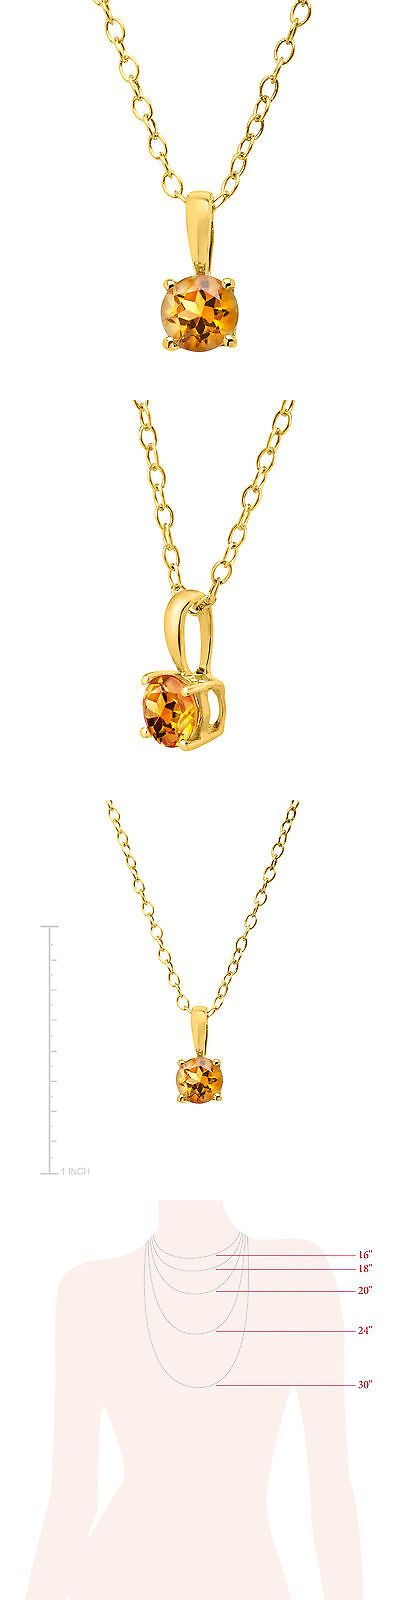 Gemstone 164332: 3 8 Ct Natural Citrine Pendant In 10K Gold, 16 -> BUY IT NOW ONLY: $49 on eBay!